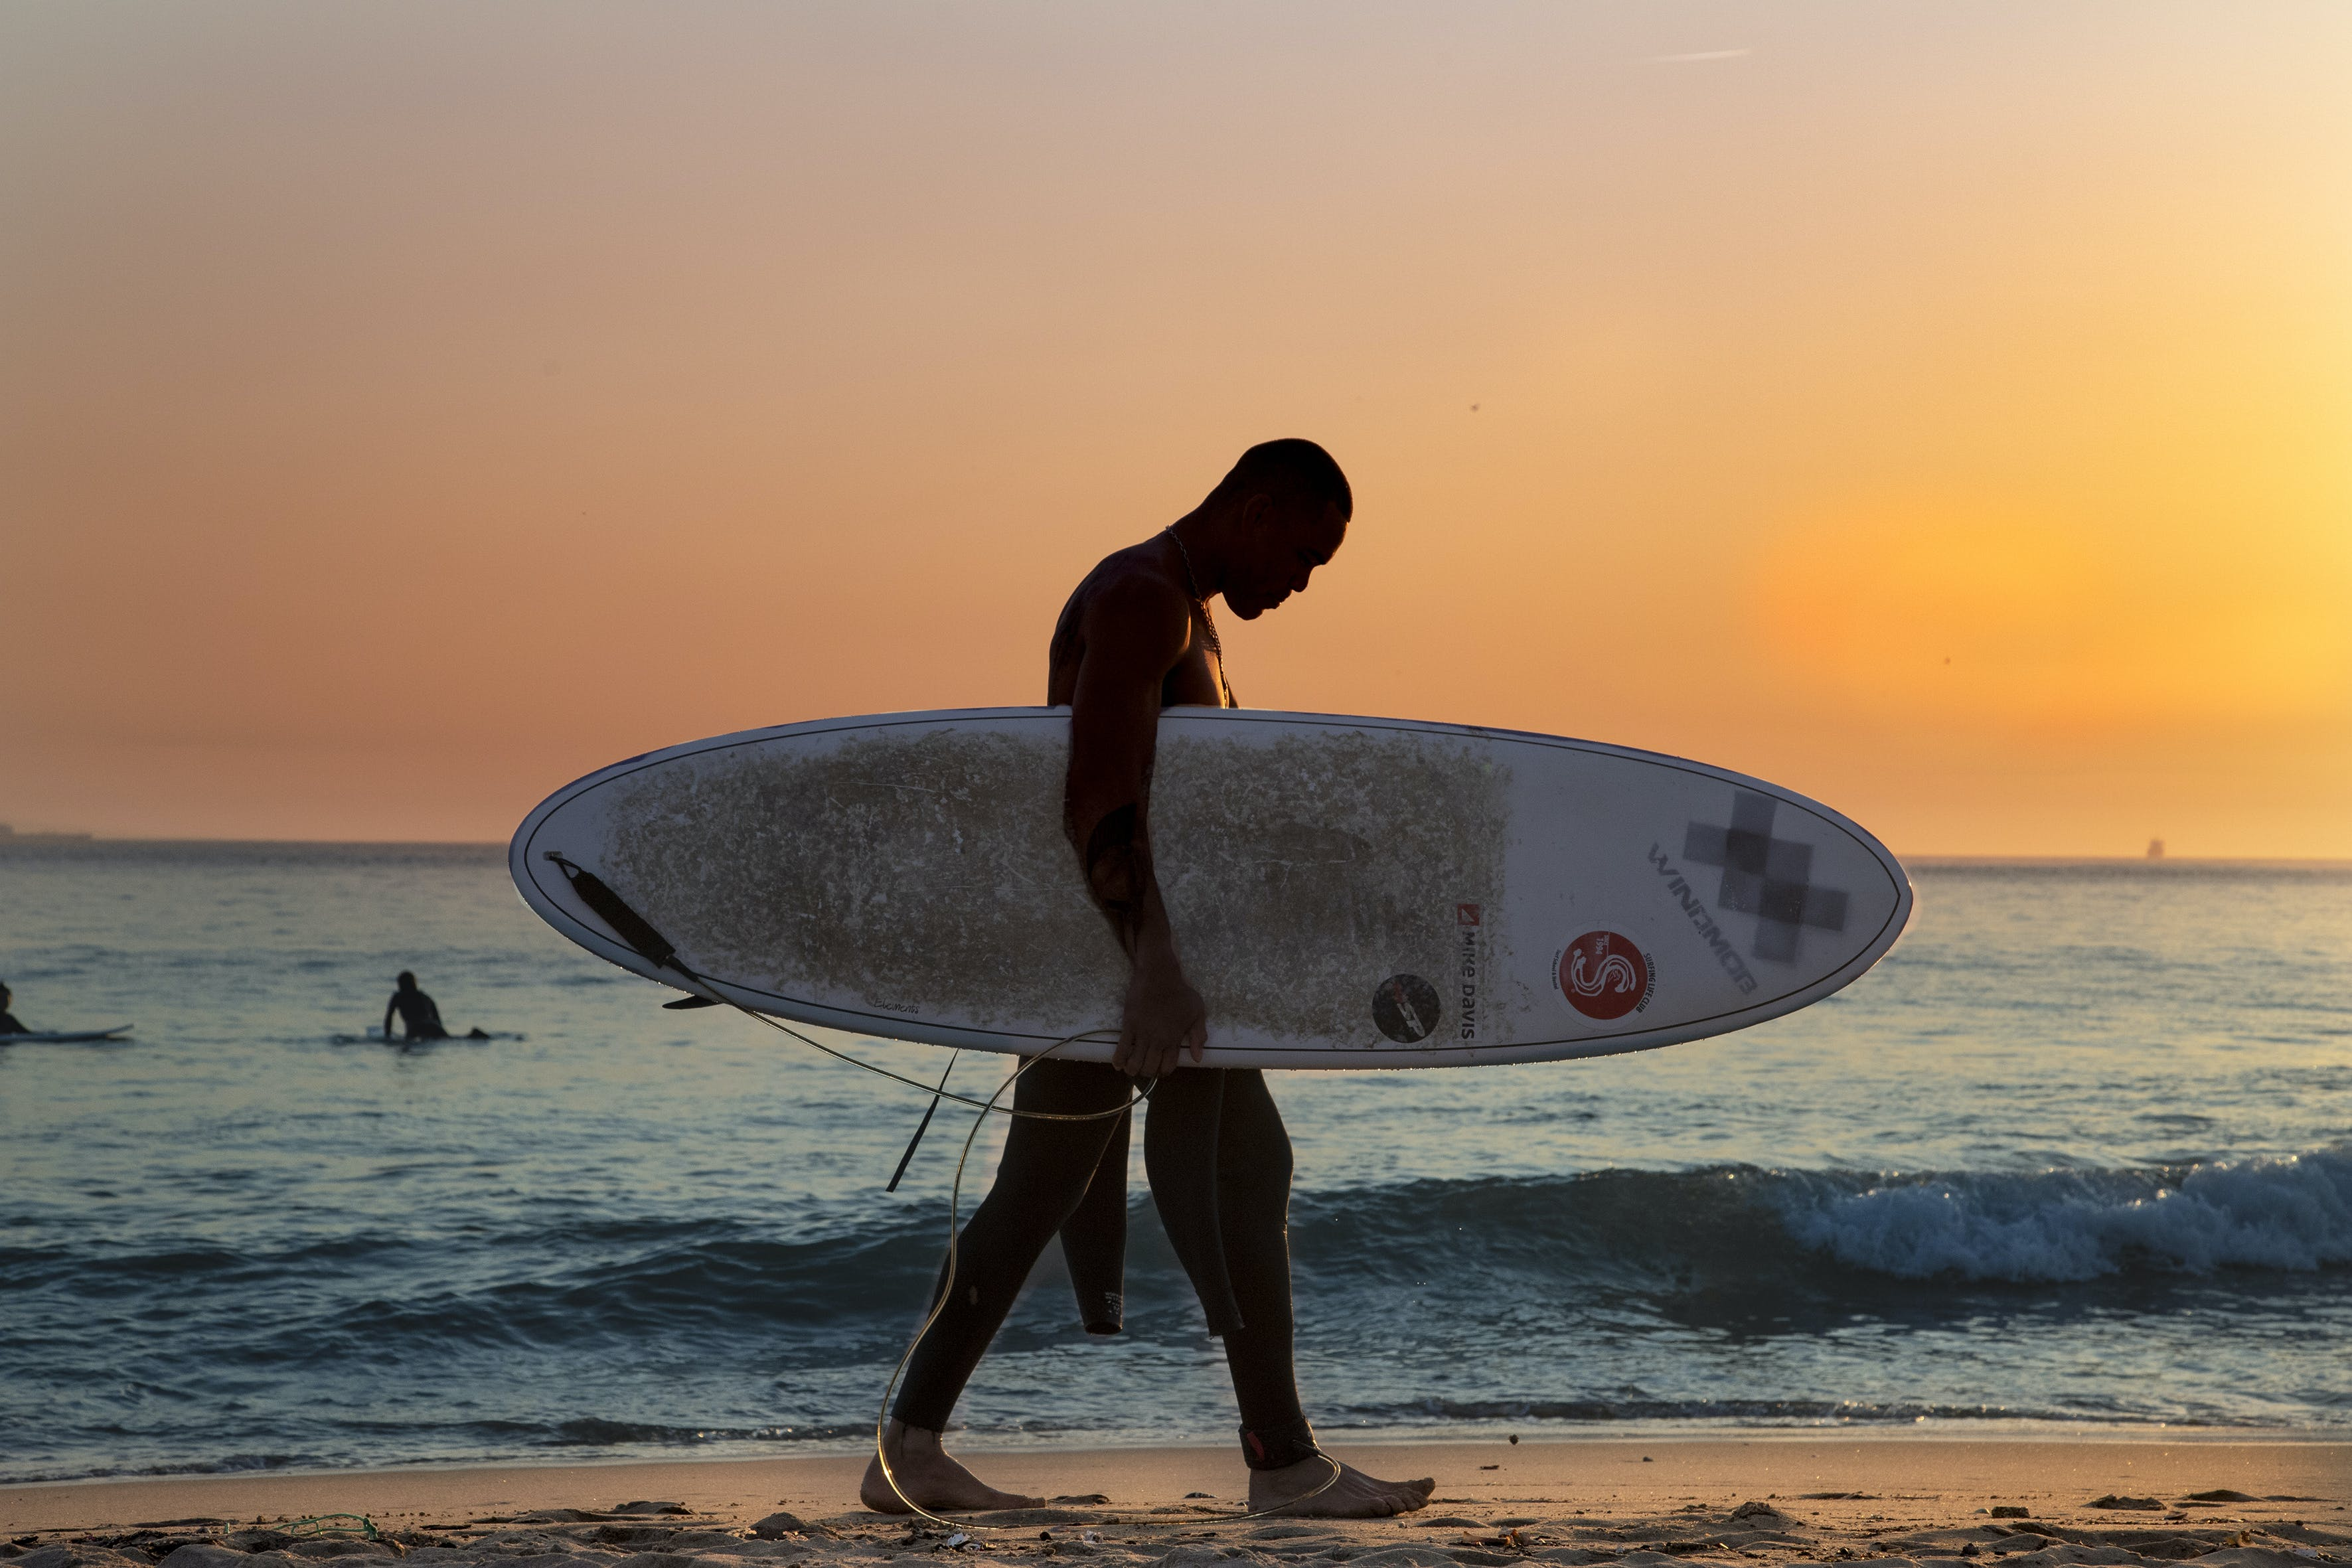 Man Carrying White Surfboard on Beach